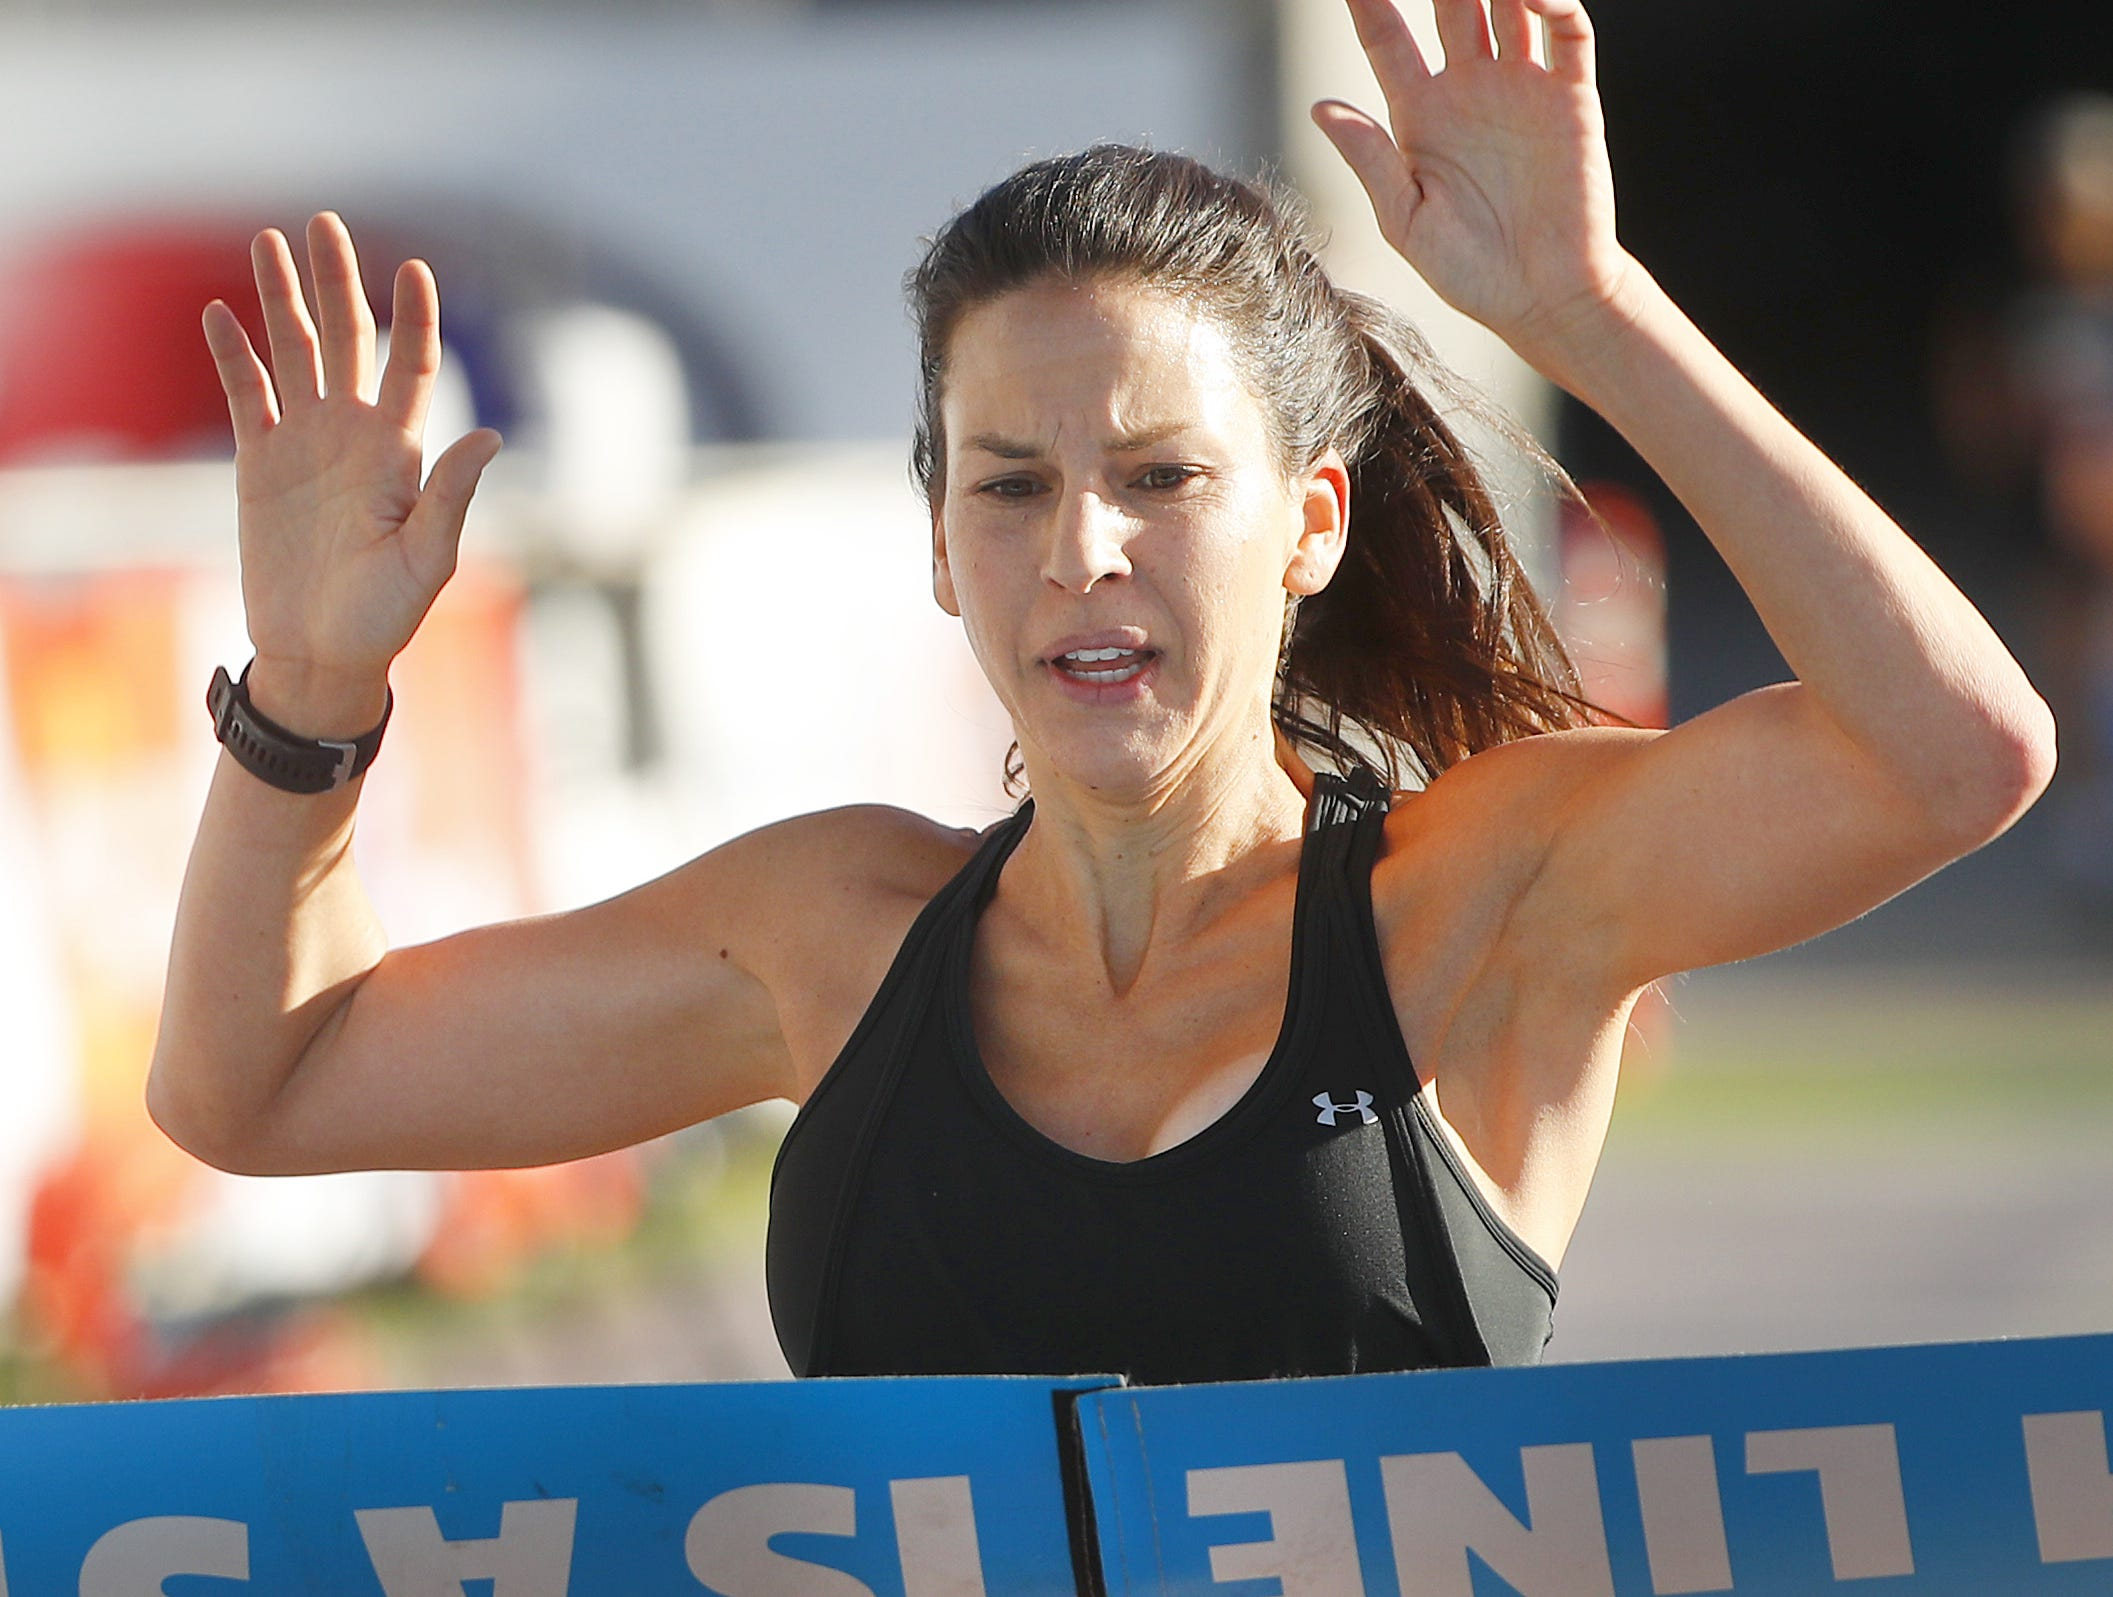 Cassandra Rios, of Phoenix, wins first place for women during Pat's Run 2019 in Tempe, Ariz. on April 27, 2019.